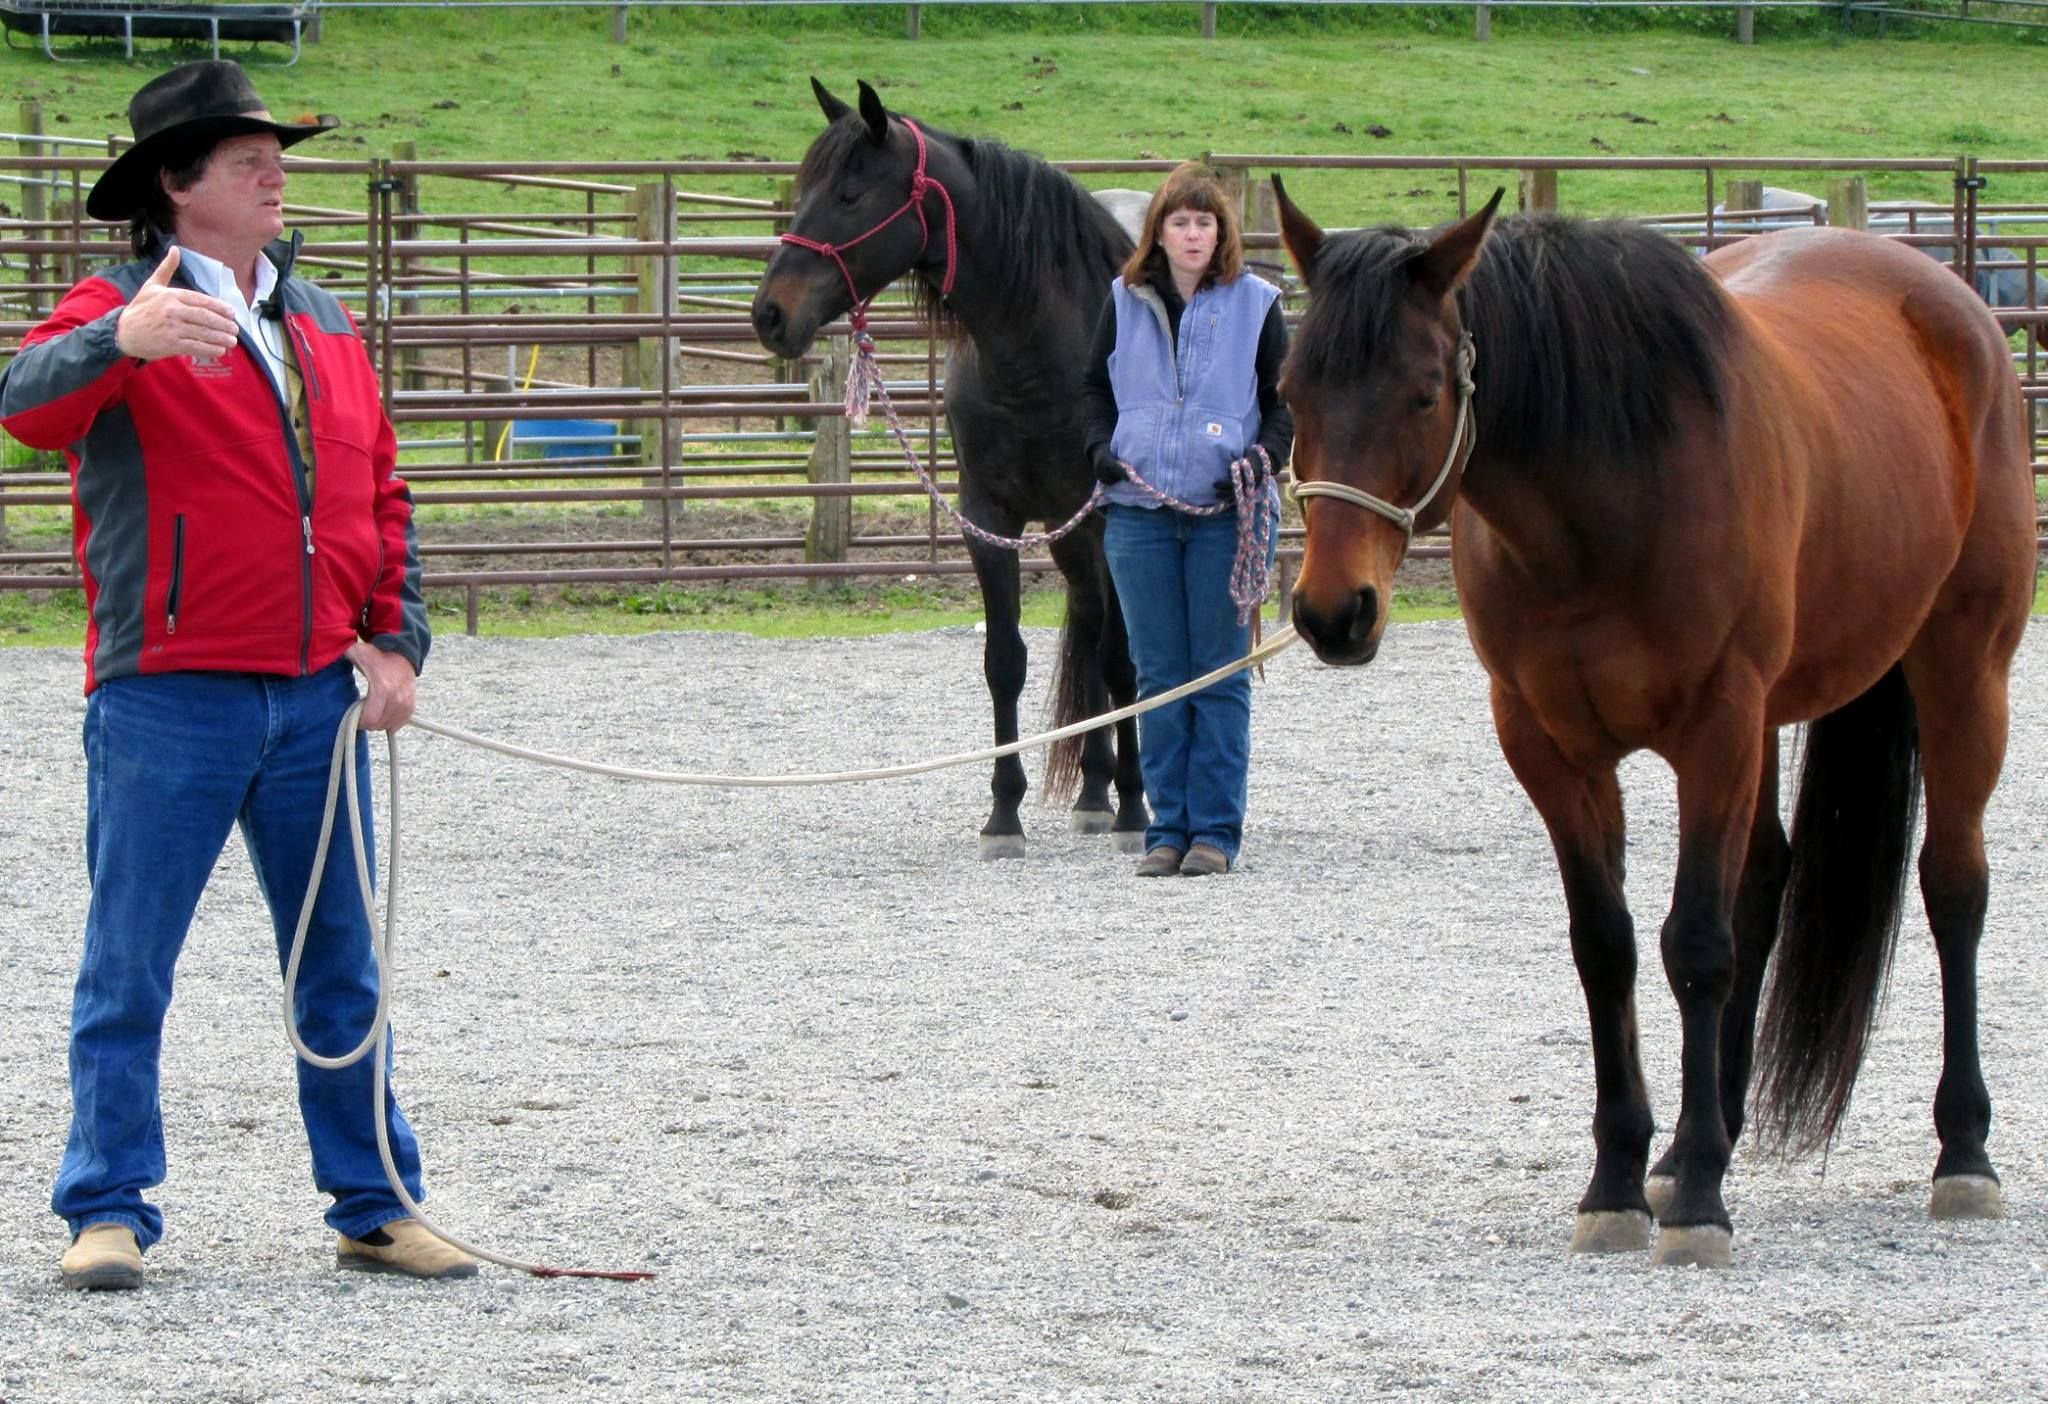 Ground work can be the foundation to creating a quality relationship and clear communication with your horse.